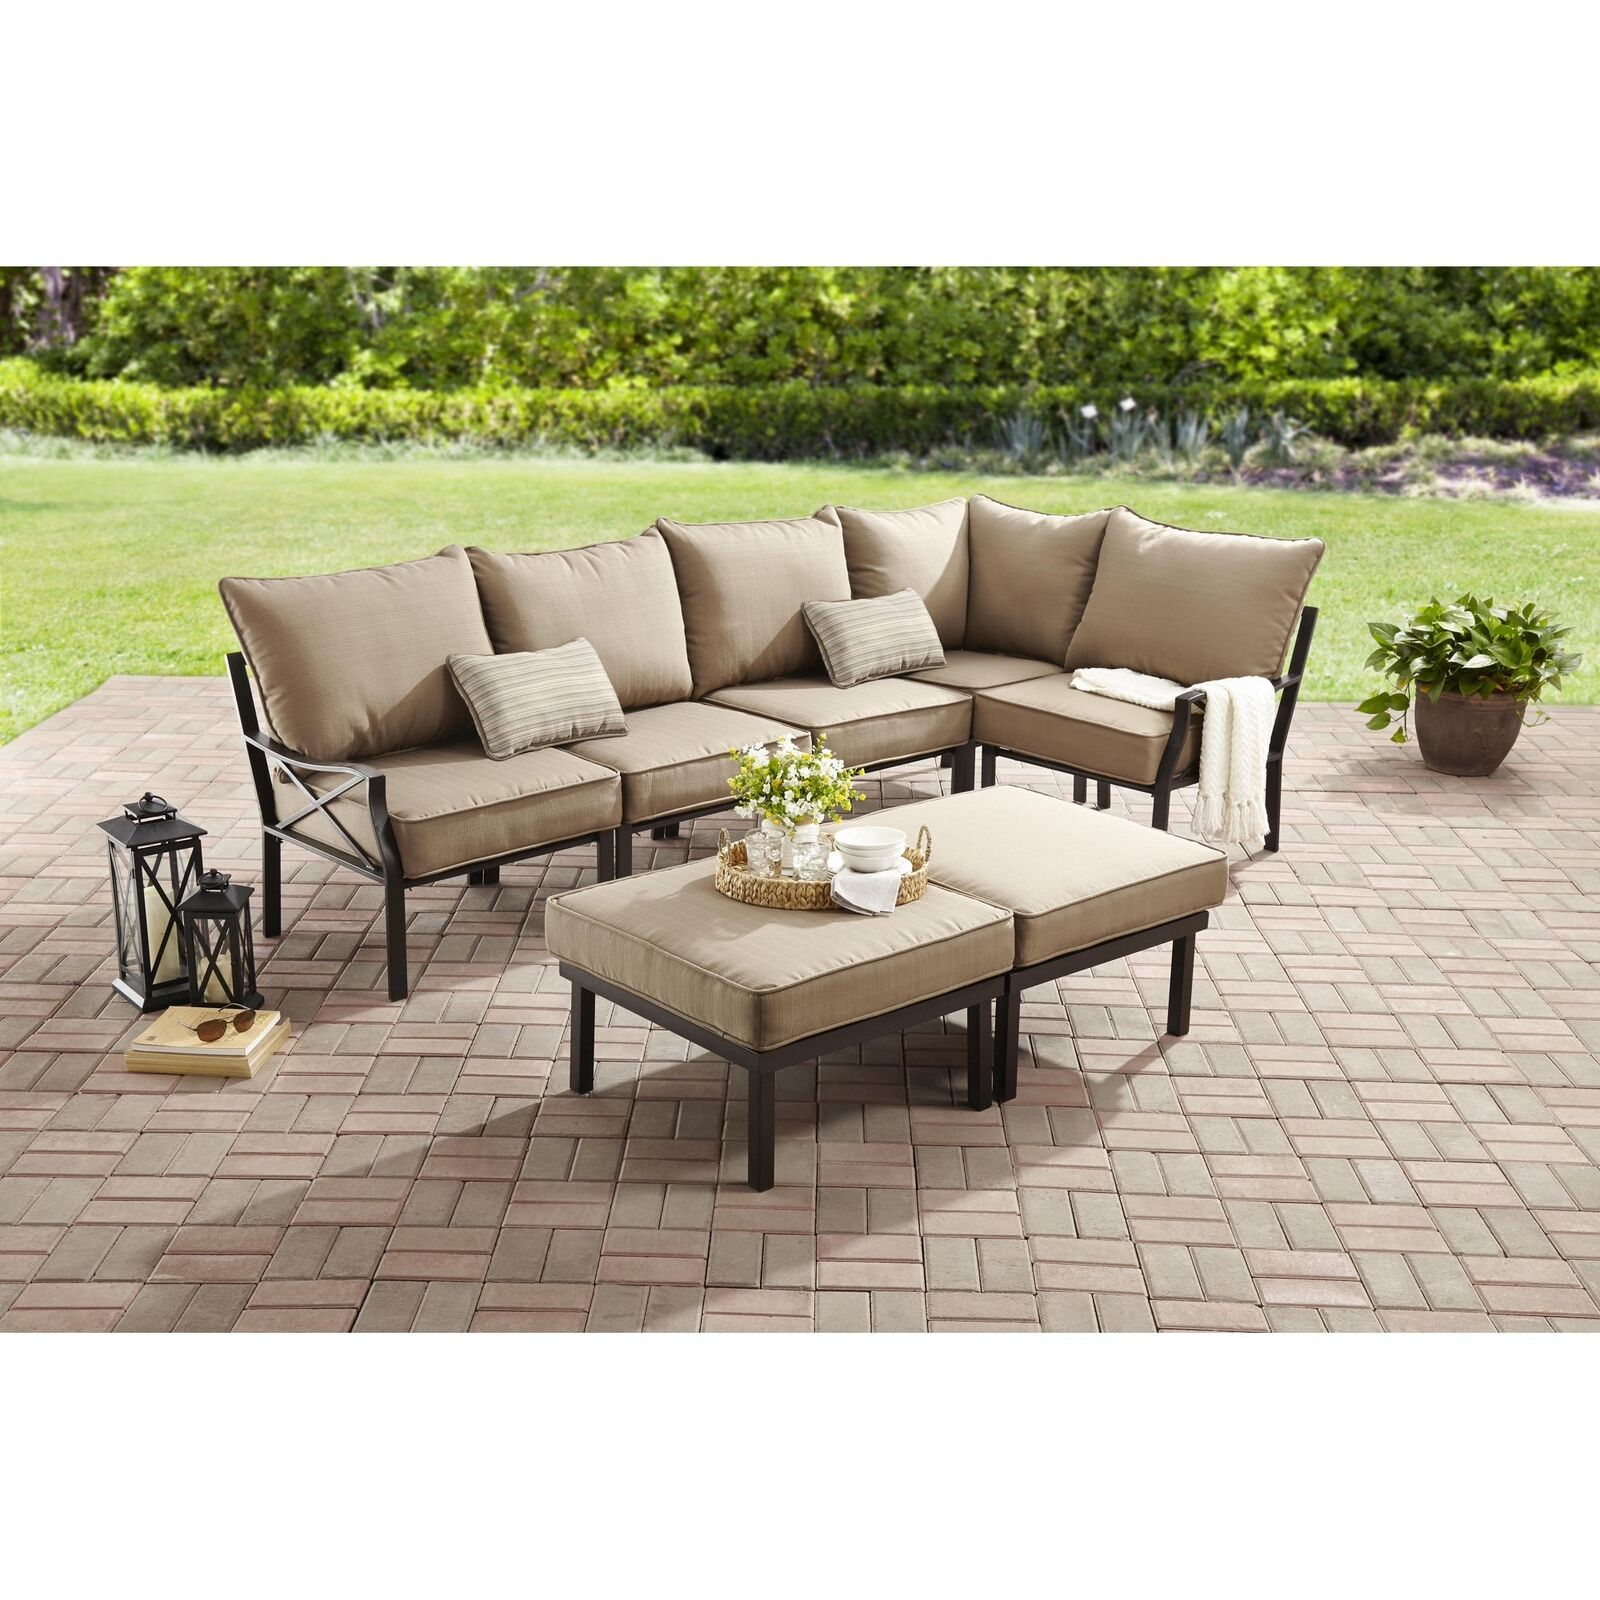 Details About Patio Furniture Set Outdoor Sofa Bench Foot Stool W/ Cushion  Ottoman 7 Piece